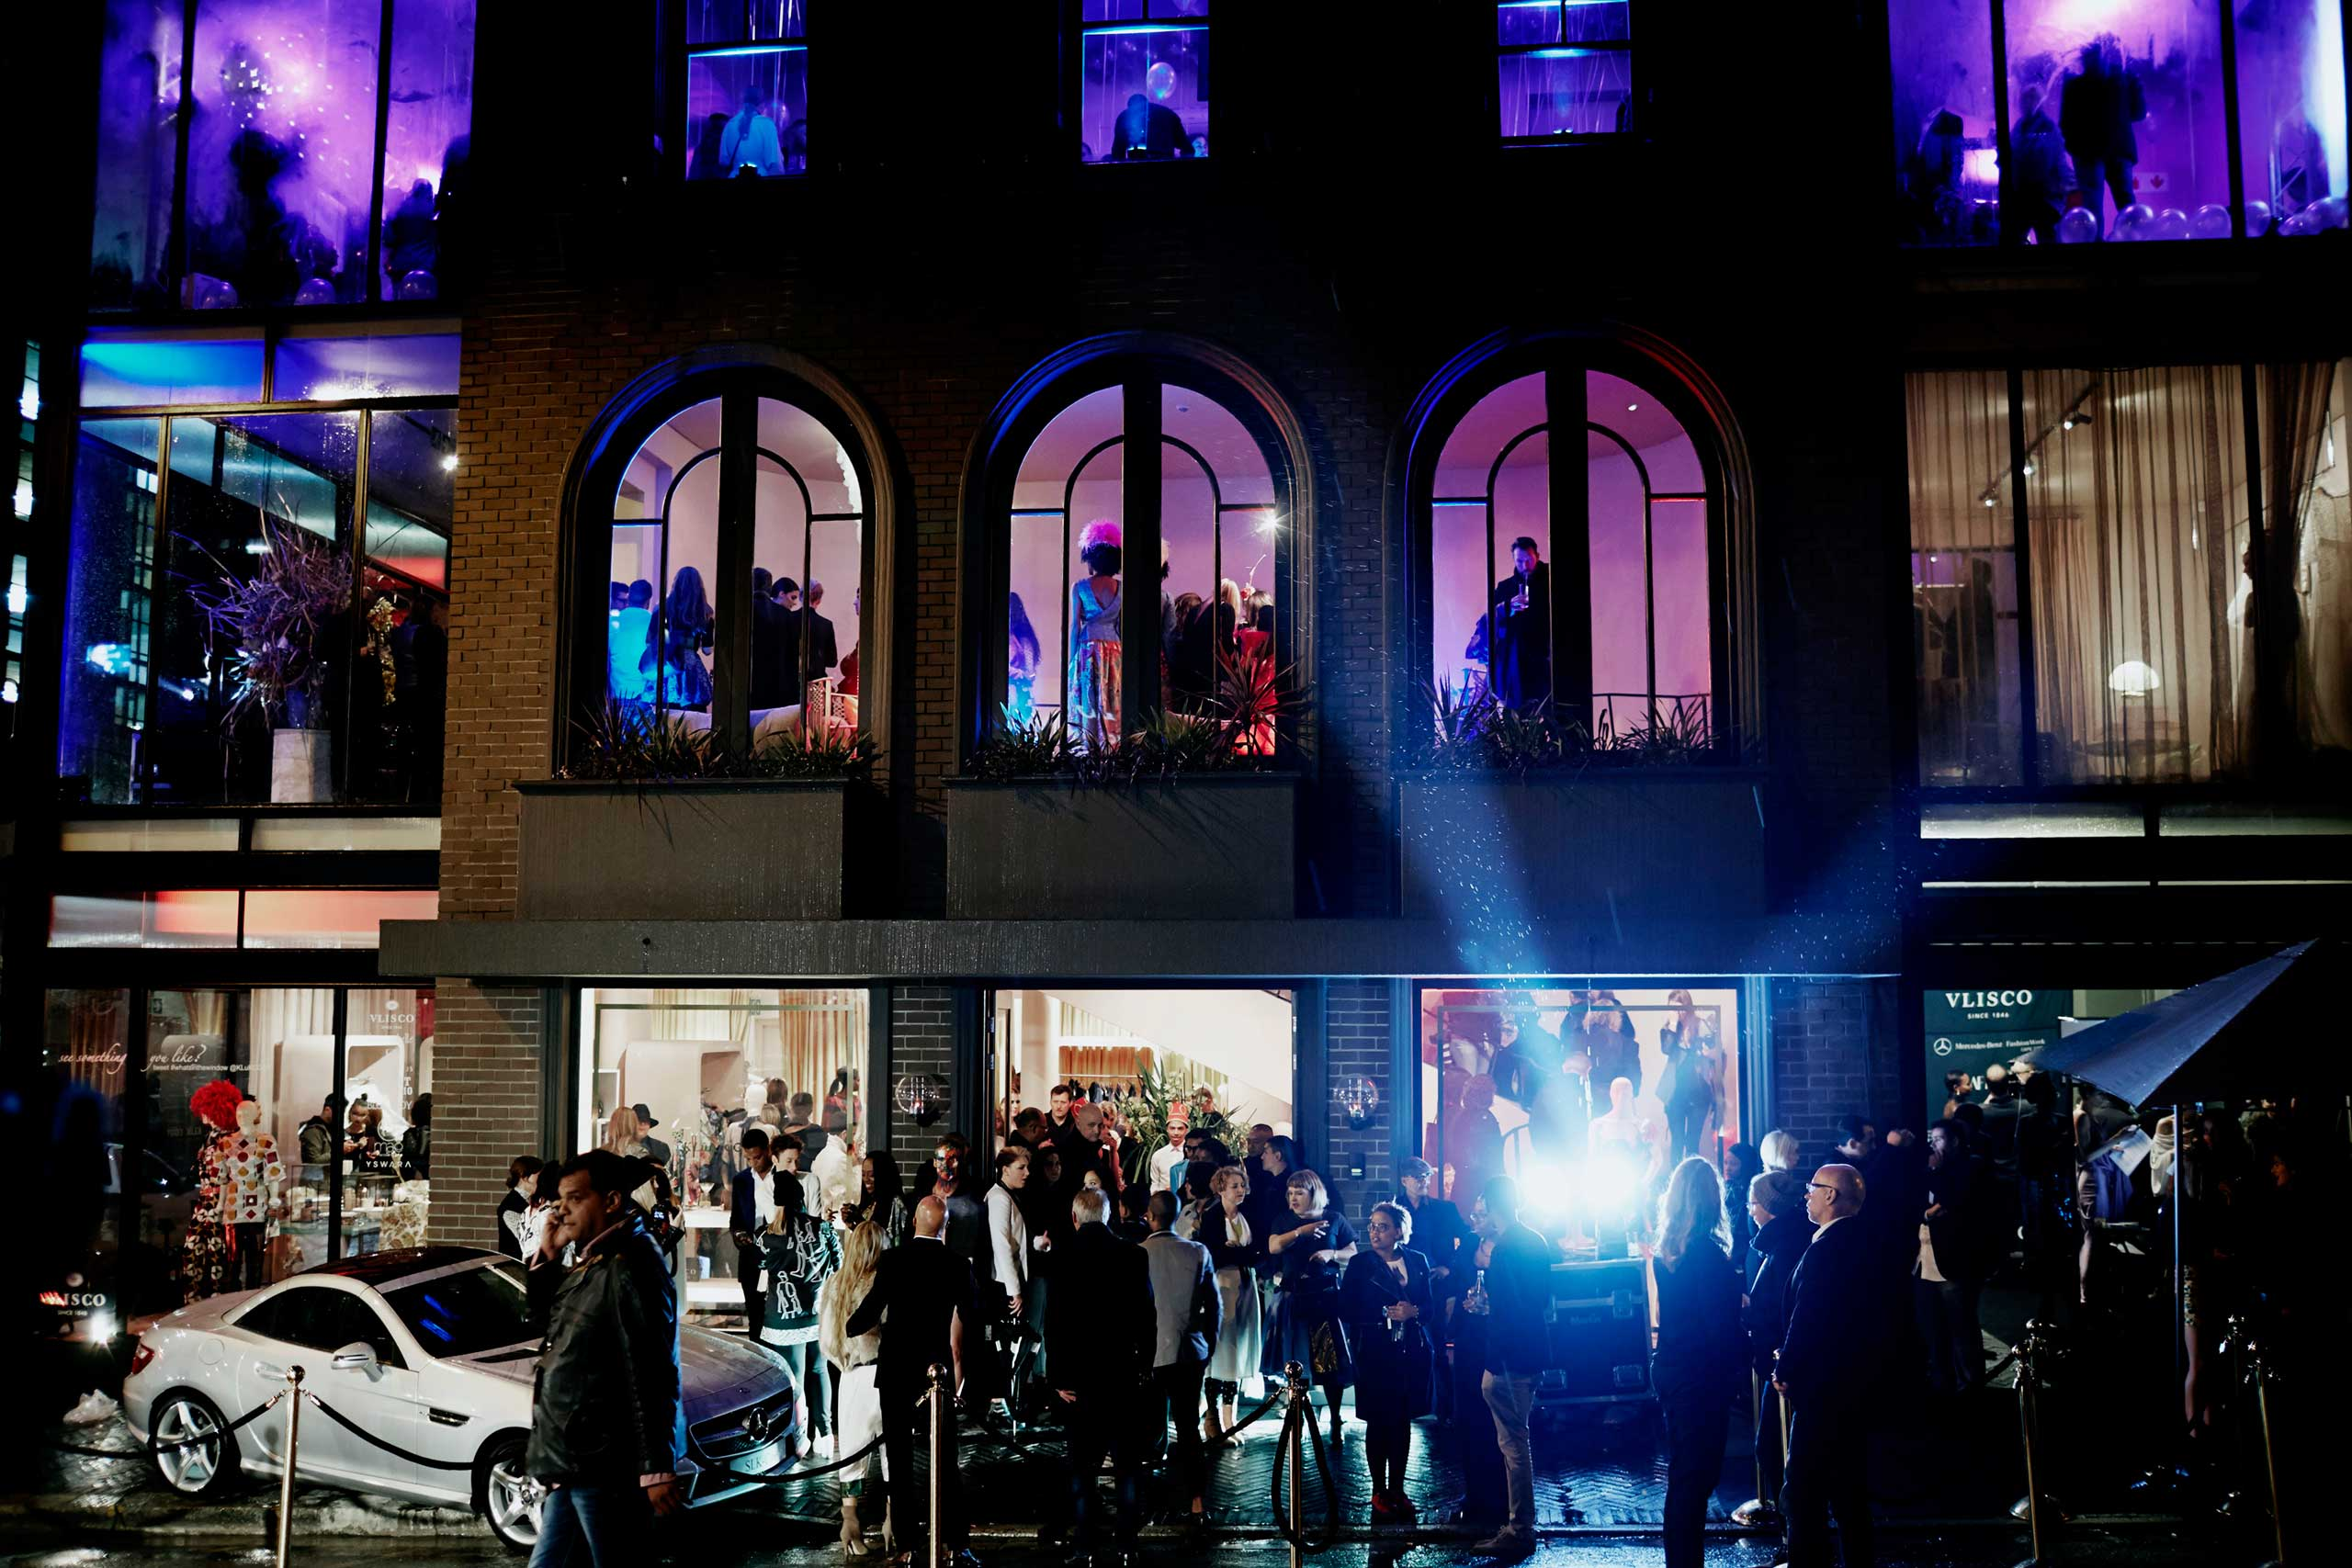 Guests arrive during an installation show at the new Klûk CGDT flagship store during Mercedes-Benz Fashion Week on July 26, 2014, in Cape Town, South Africa.